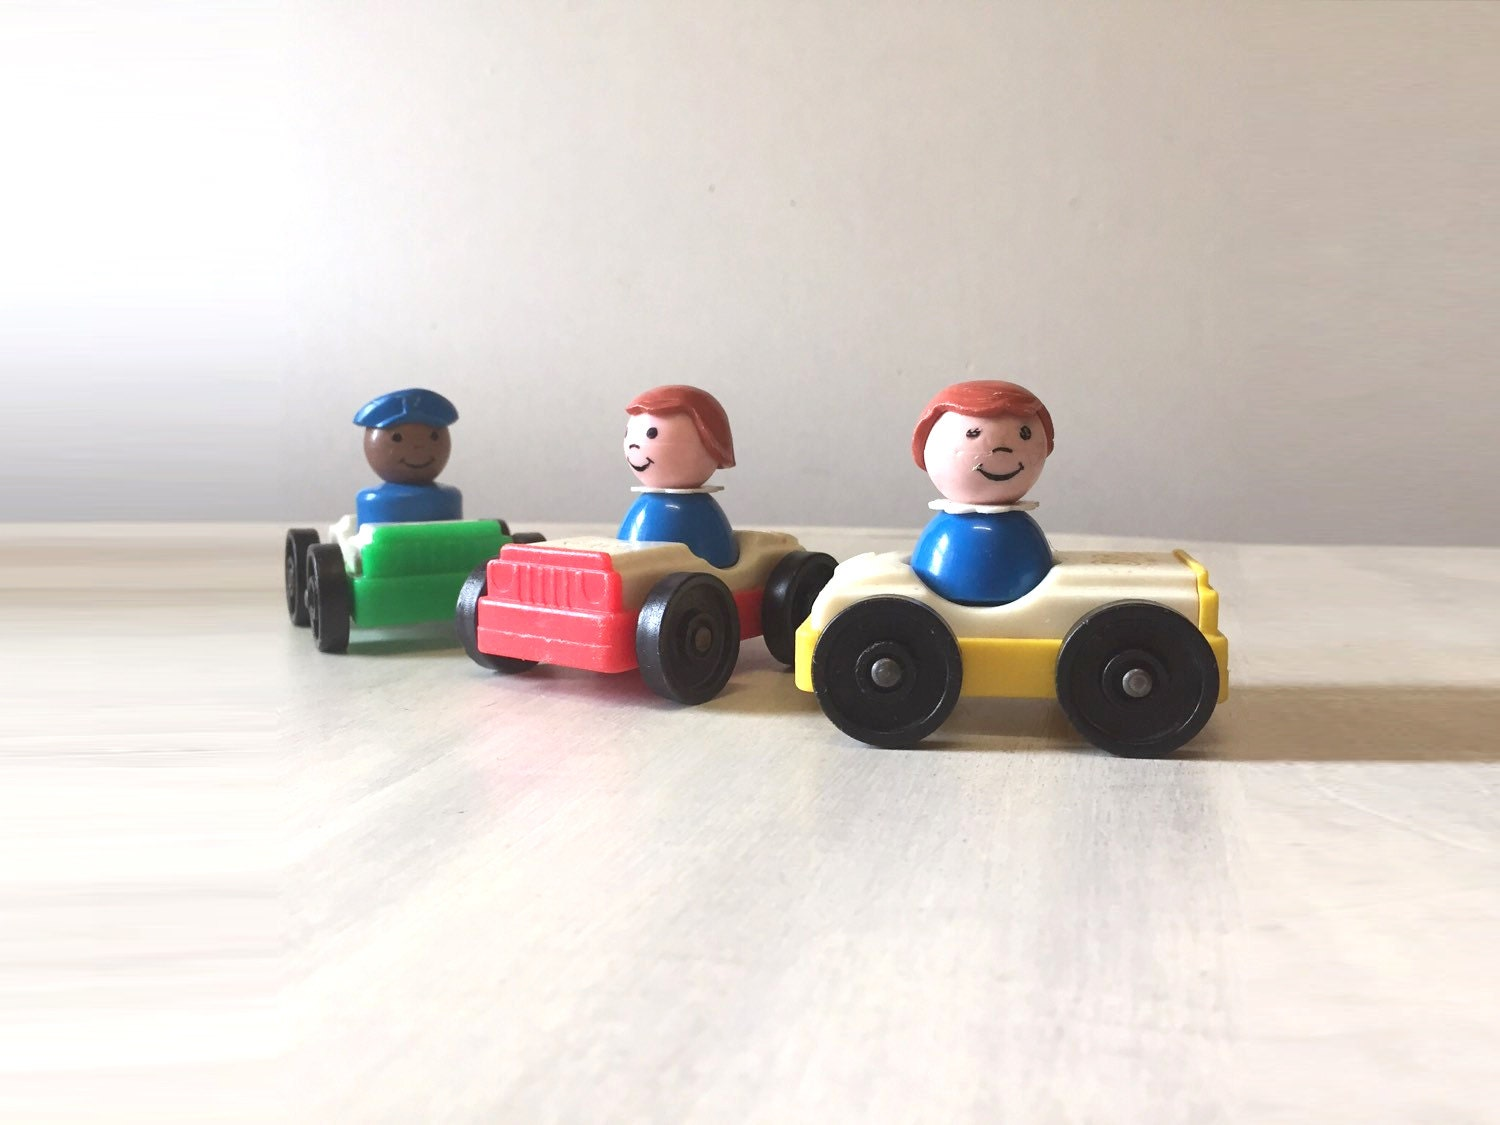 Vintage Fisher Price people vintage toys little people fisher price toy collectible toy toy car plastic toy play family retro toys